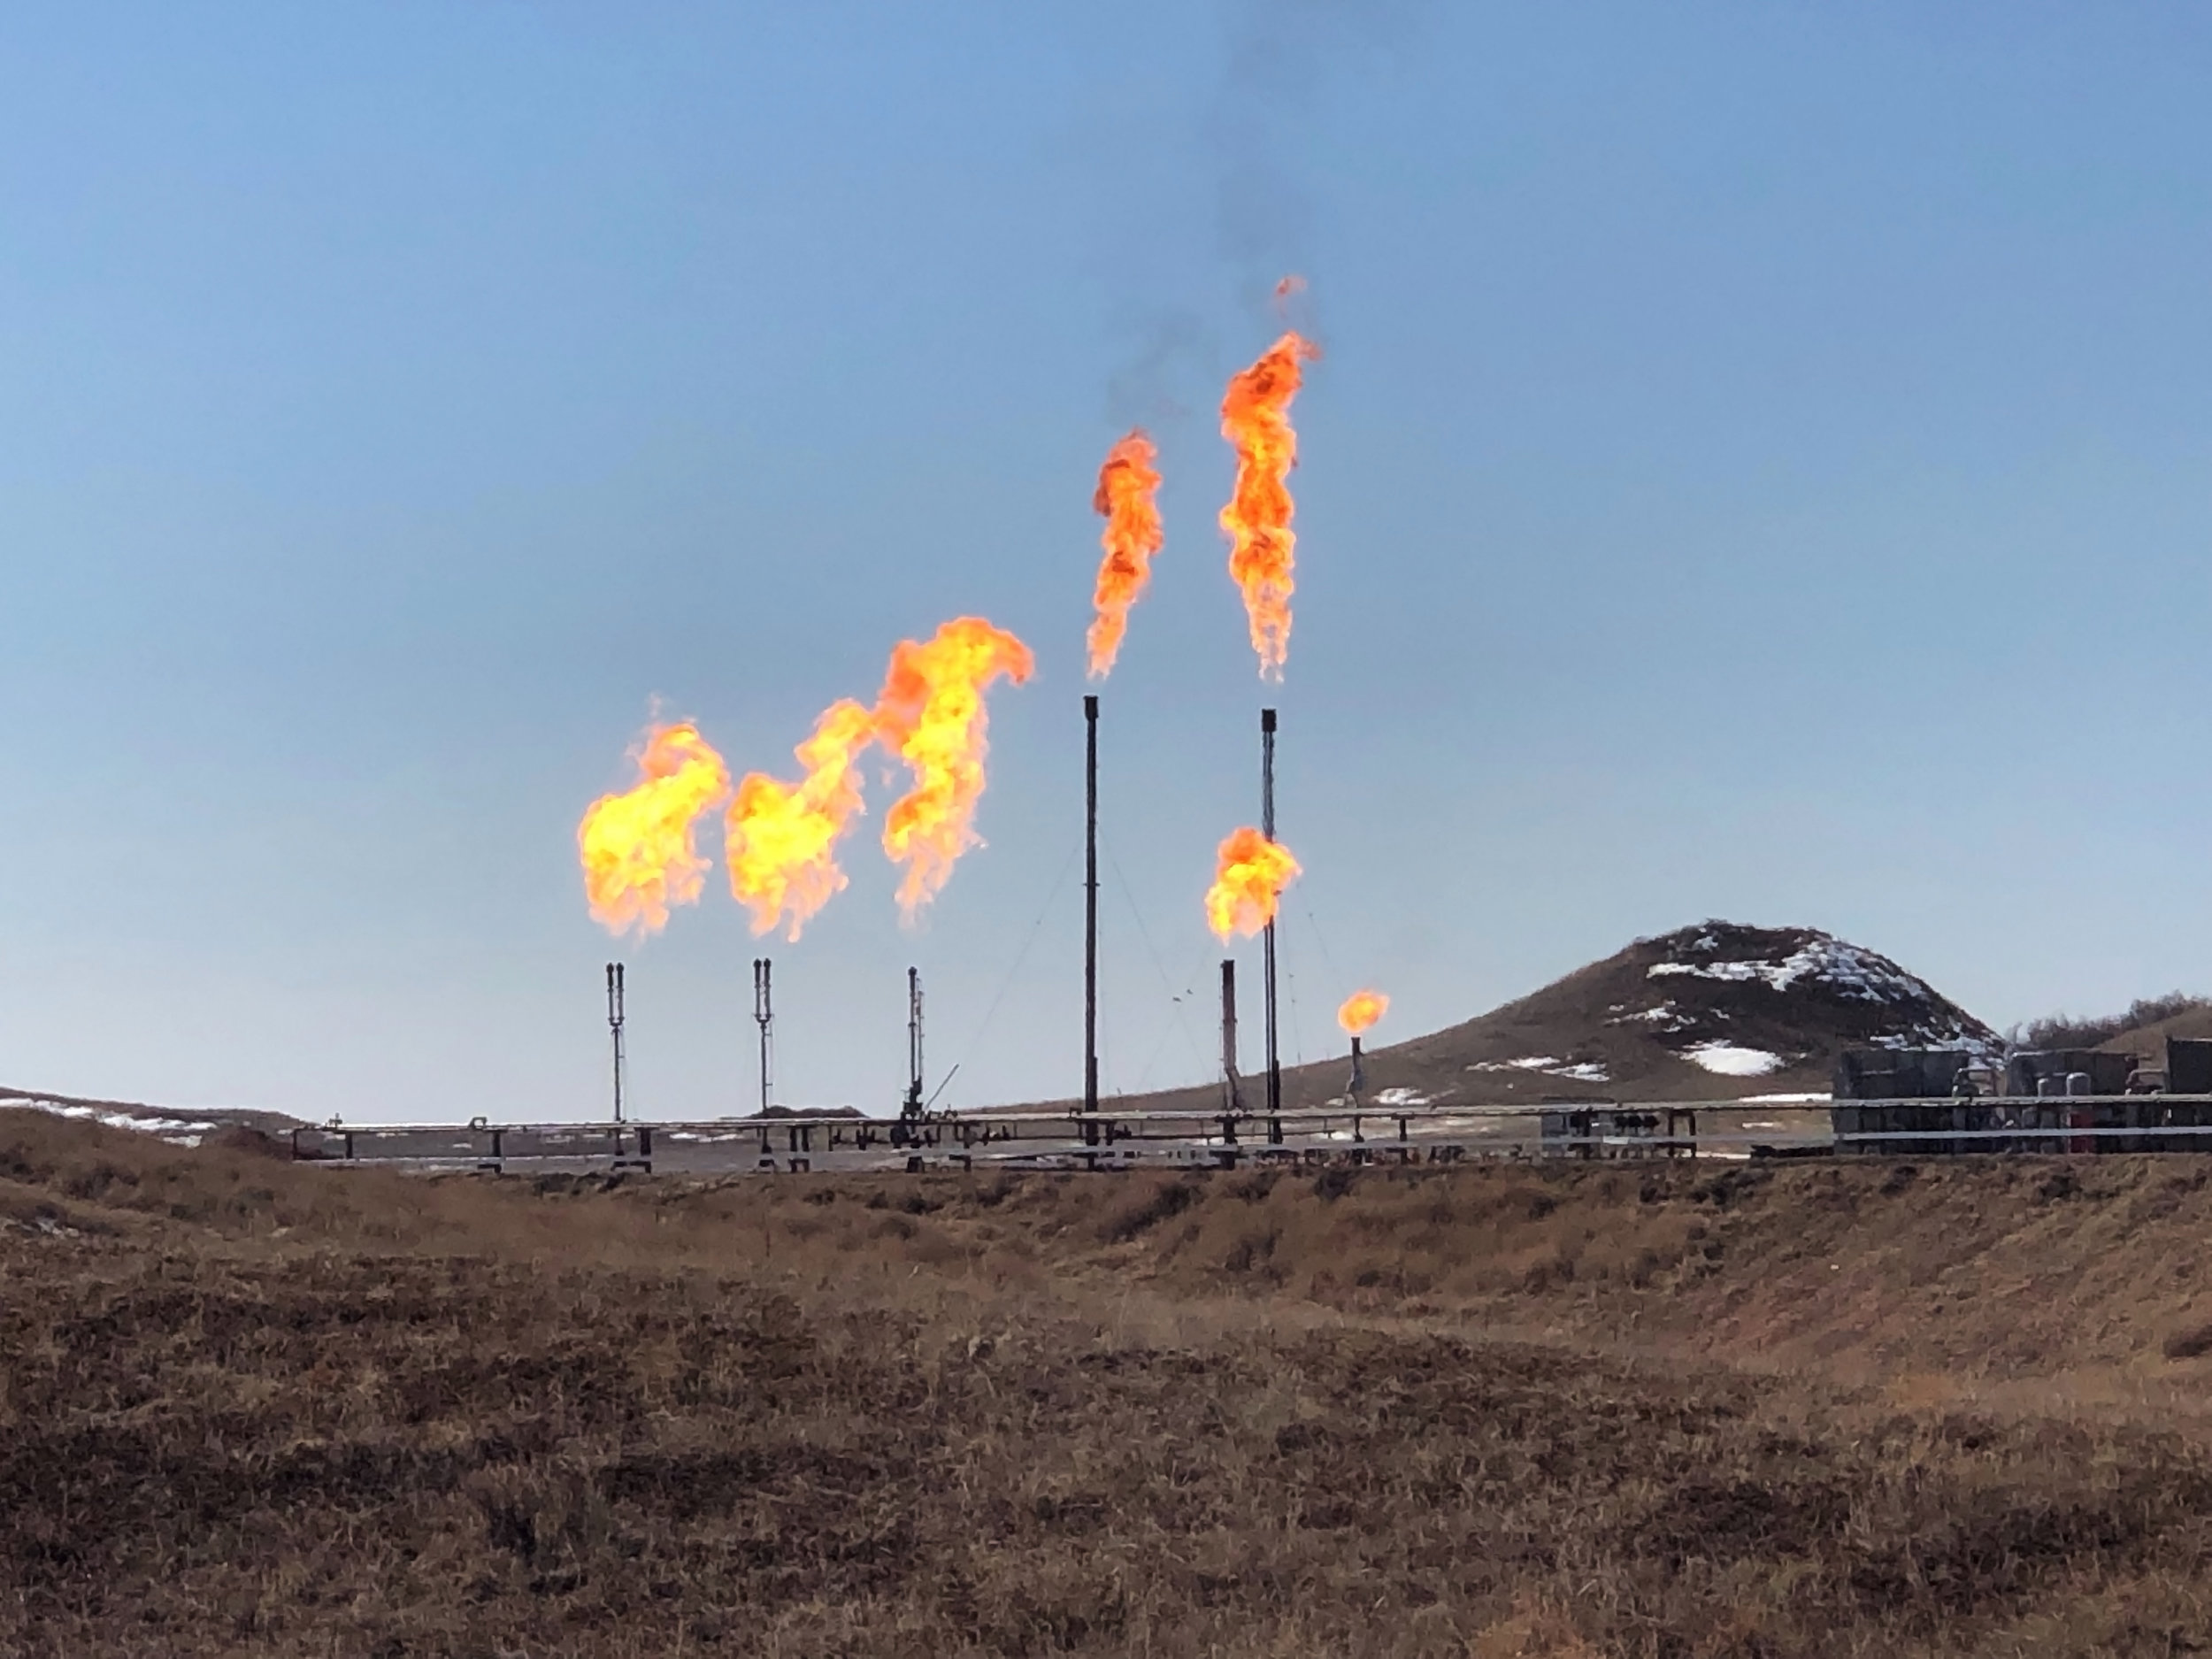 REGULATORY BENEFITS - Achieve a beneficial use for natural gas as well as deep emissions reductions. Crusoe's DFM technology is quickly becoming the preferred alternative to routine flaring, and helps pipeline-constrained operators comply with anti-flaring, anti-waste and anti-pollution rules and regulations that may otherwise impede operations.